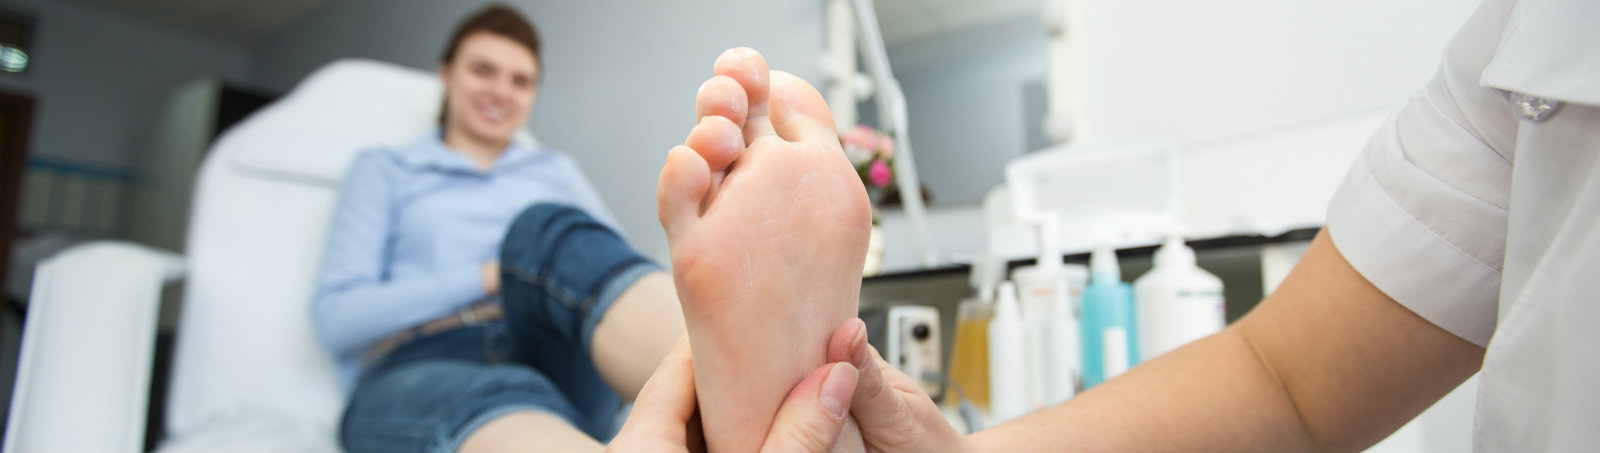 Introducing Shockwave Therapy for Heel Pain